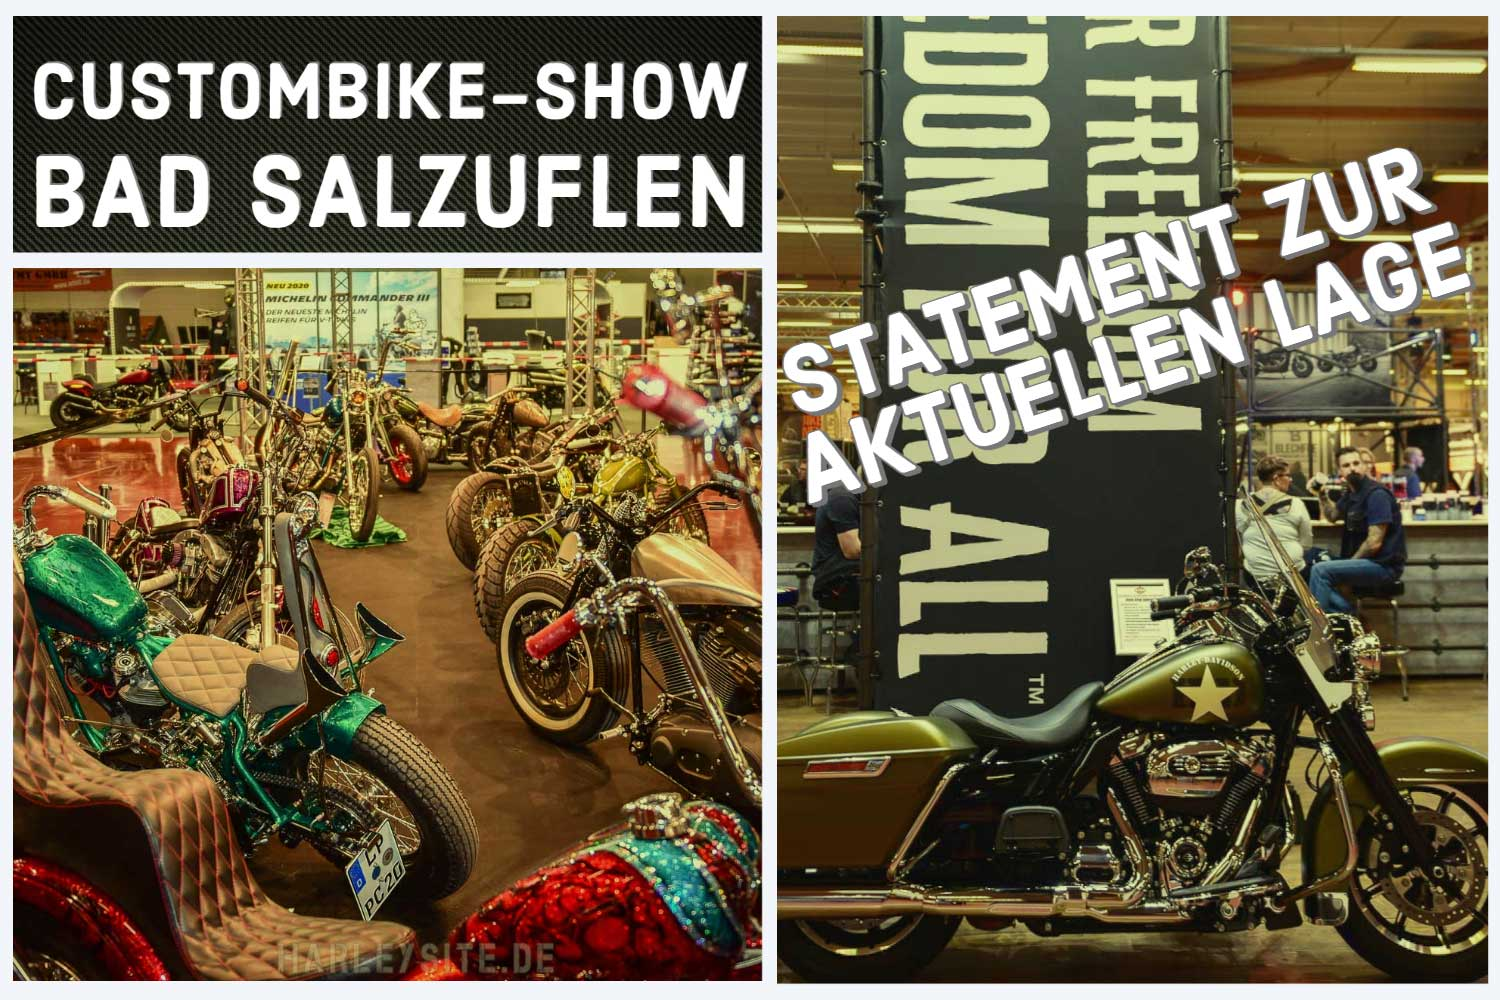 Statement zur aktuellen Lage der Custombike-Show in Bad Salzuflen